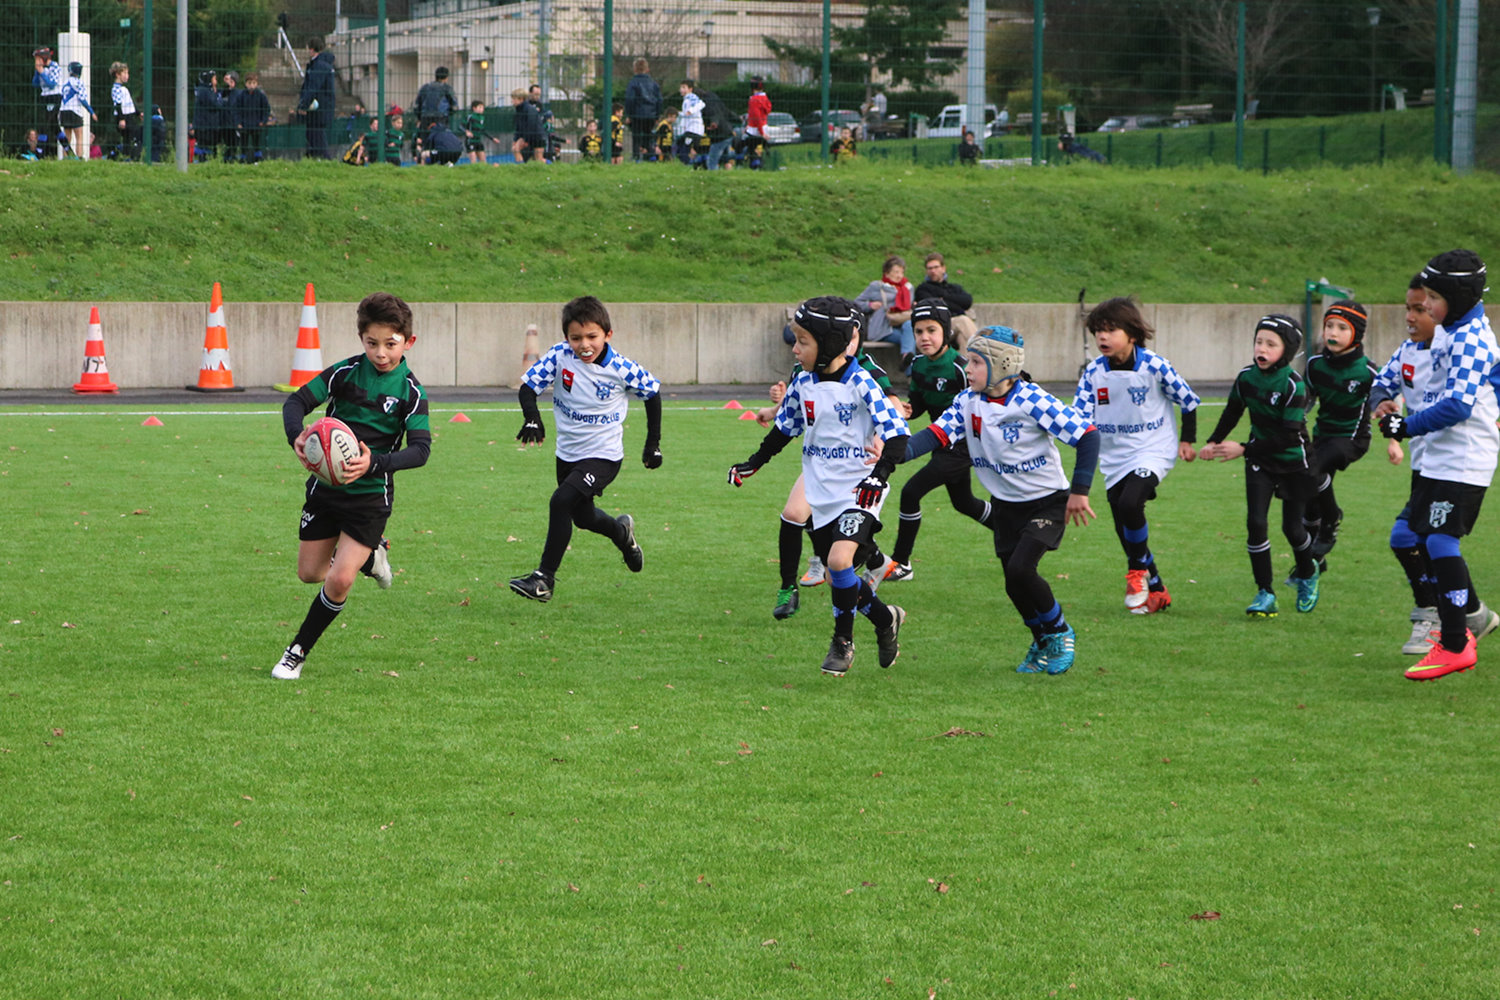 Mini poussins equipe 1 plateau suresnes rugby club for France fenetre herblay